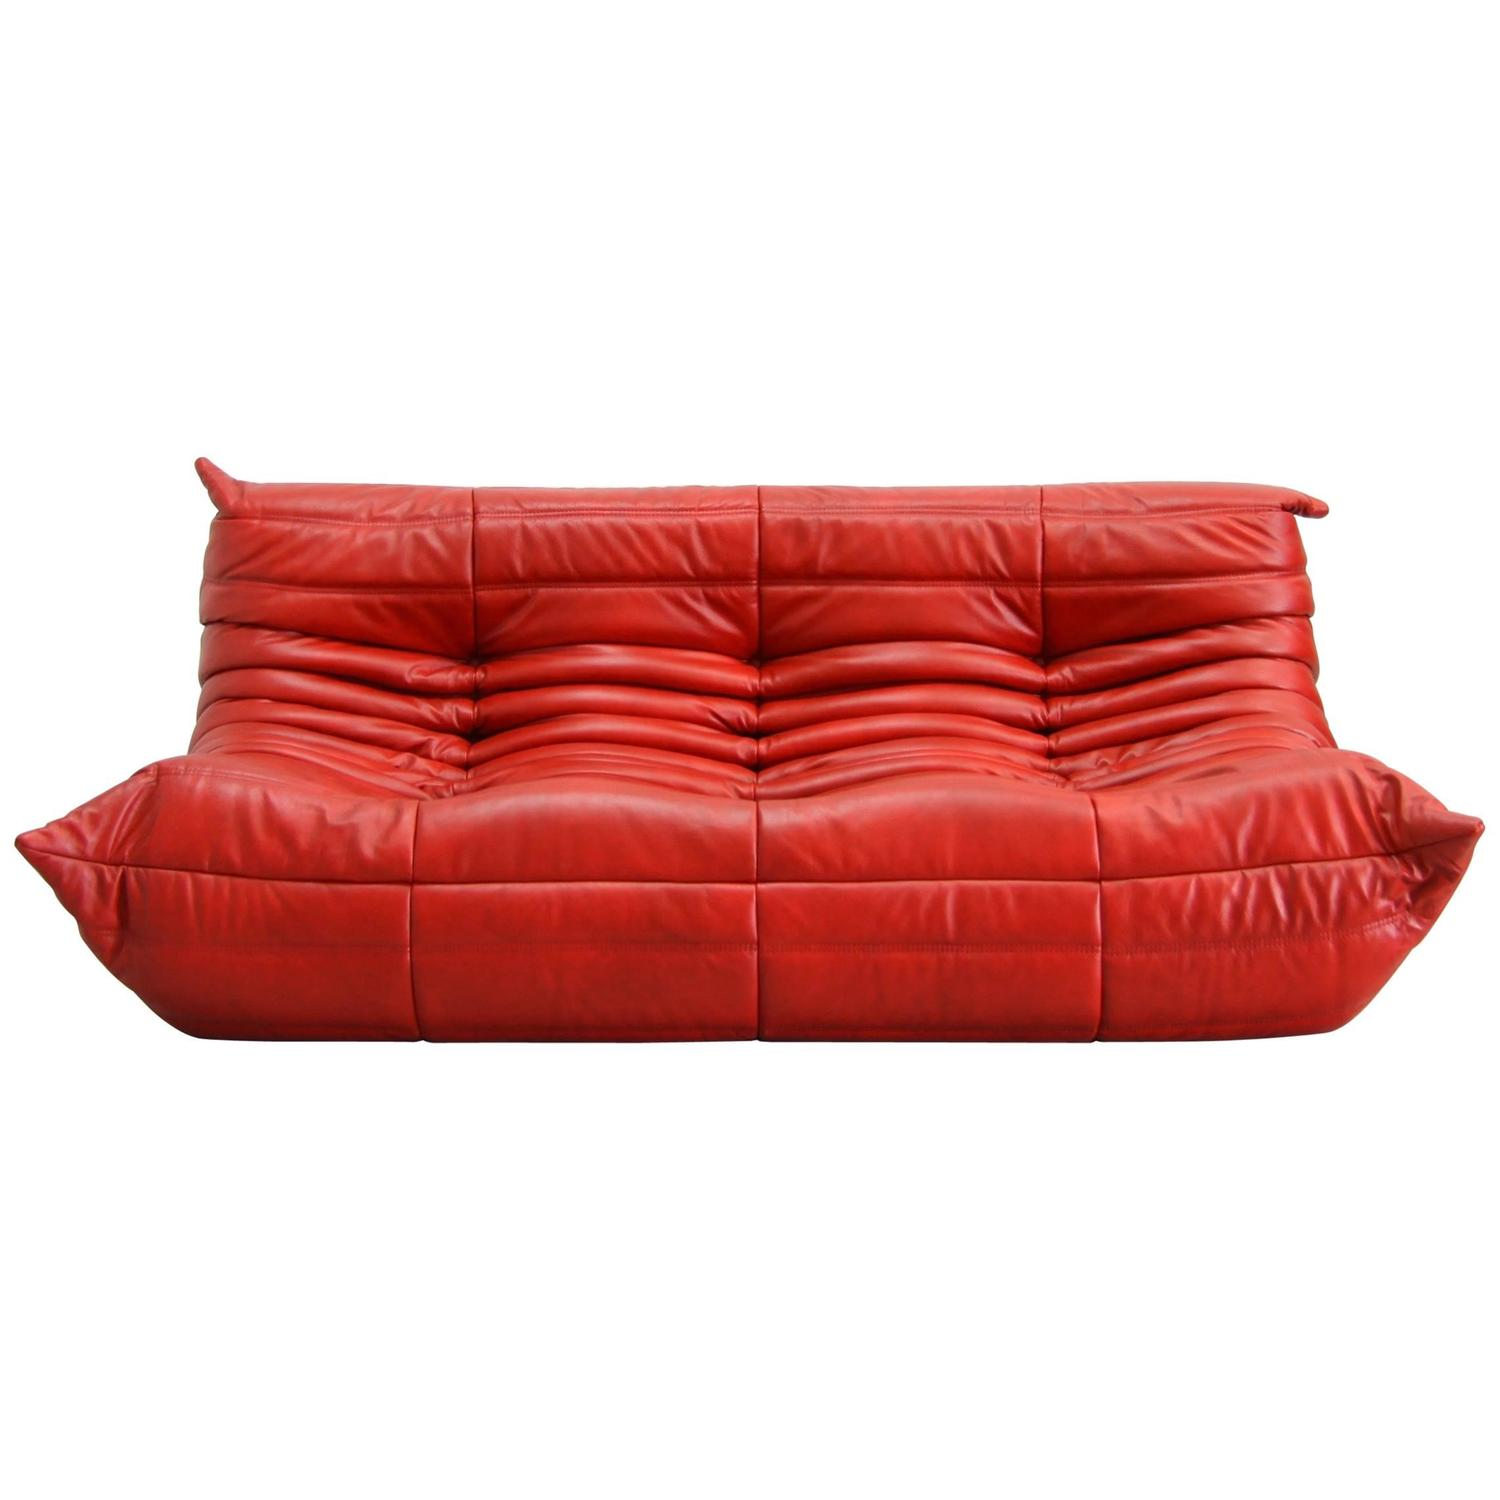 "Vintage Leather ""Togo"" Sofa by Michel Ducaroy at 1stdibs"